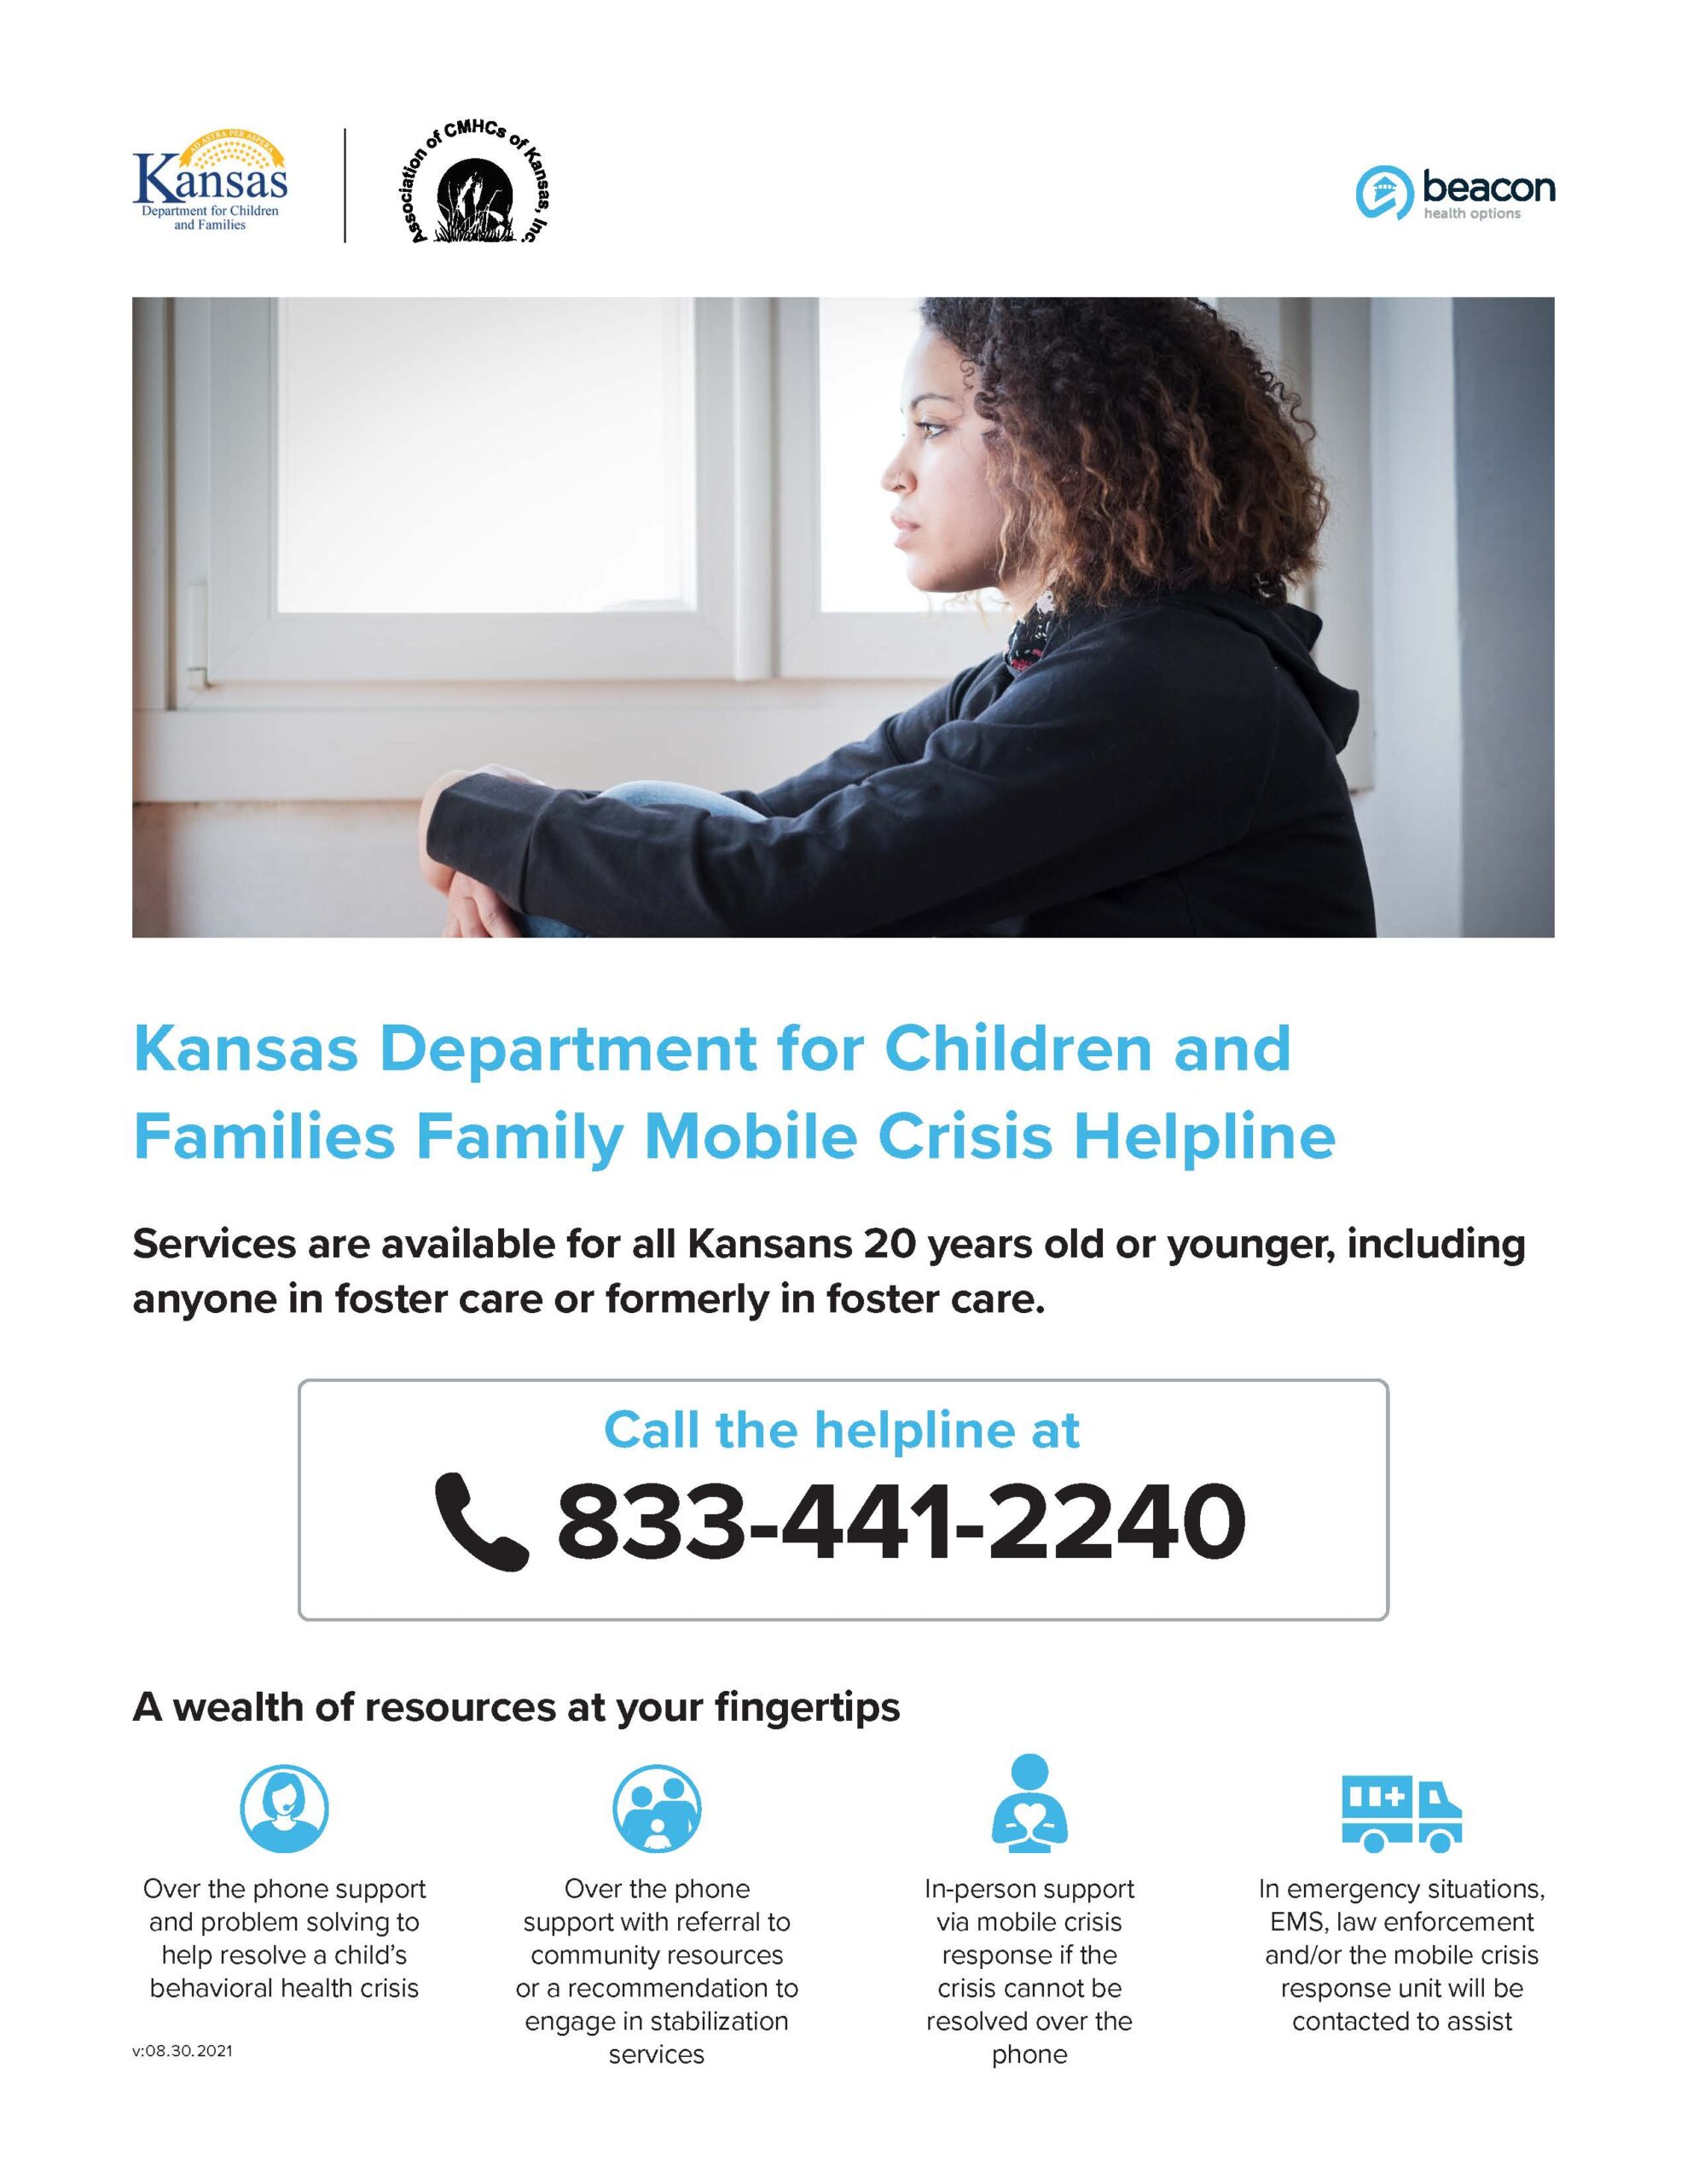 Kansas Department for Children and Families Family Mobile Crisis Helpline Services are available for all Kansans 20 years old or younger, including anyone in foster care or formerly in foster care.  Call the helpline at 833-441-2240